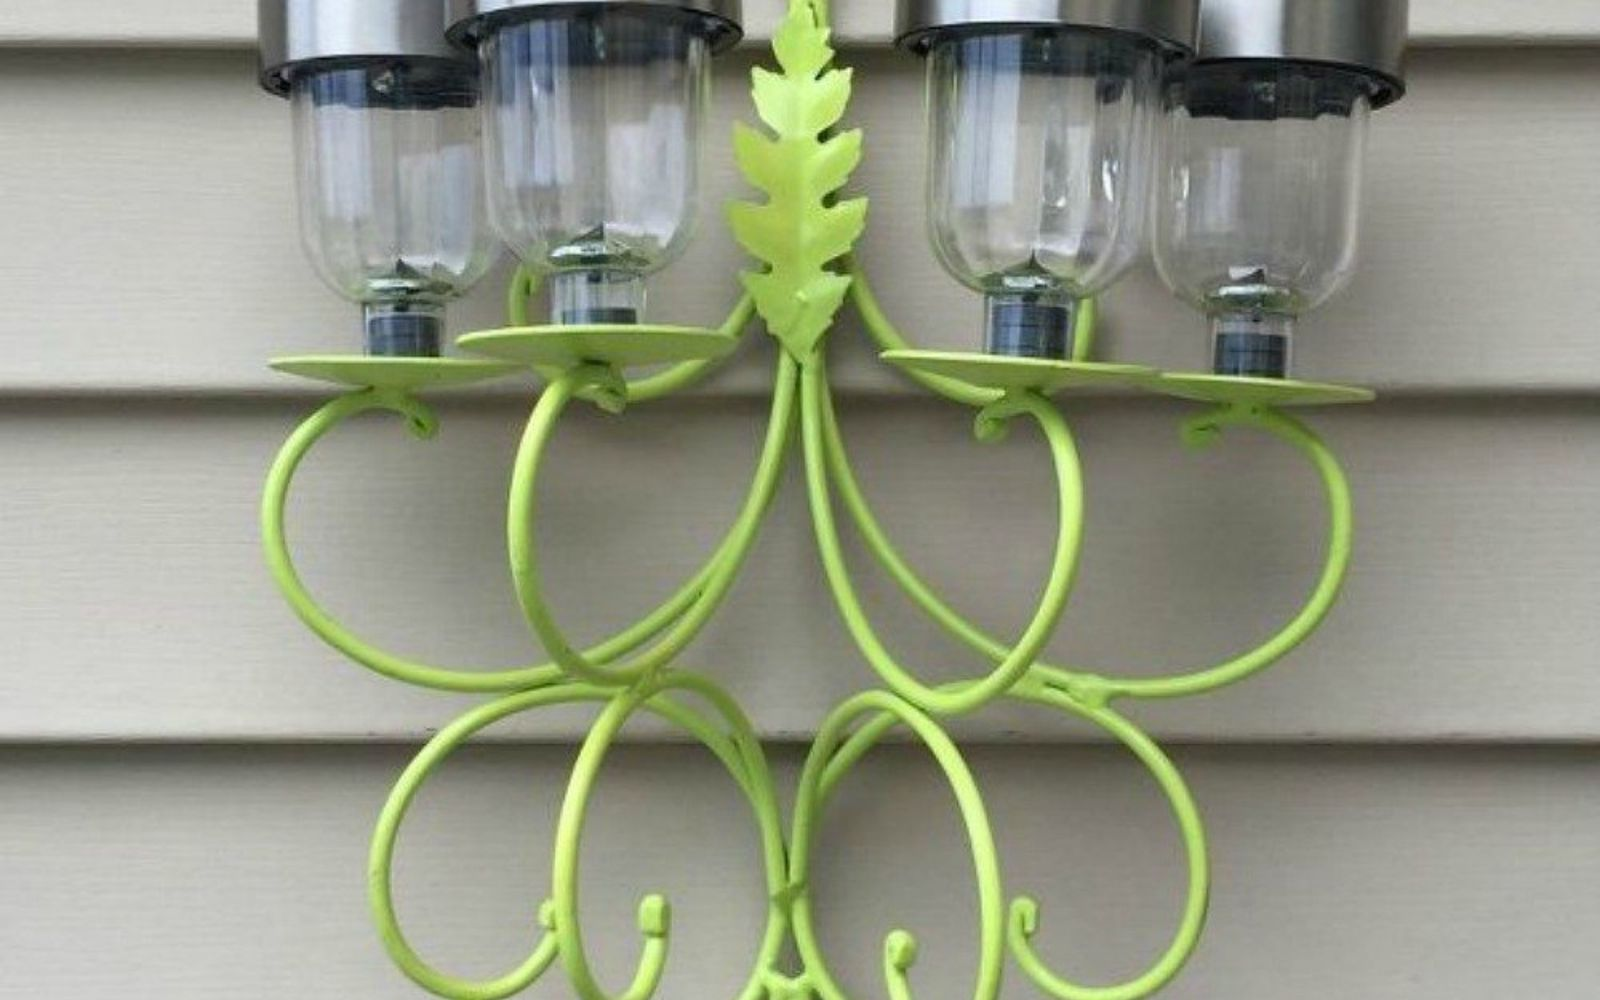 s hold onto your magnets for these 16 ingenious ideas, Use them to piece together a solar light